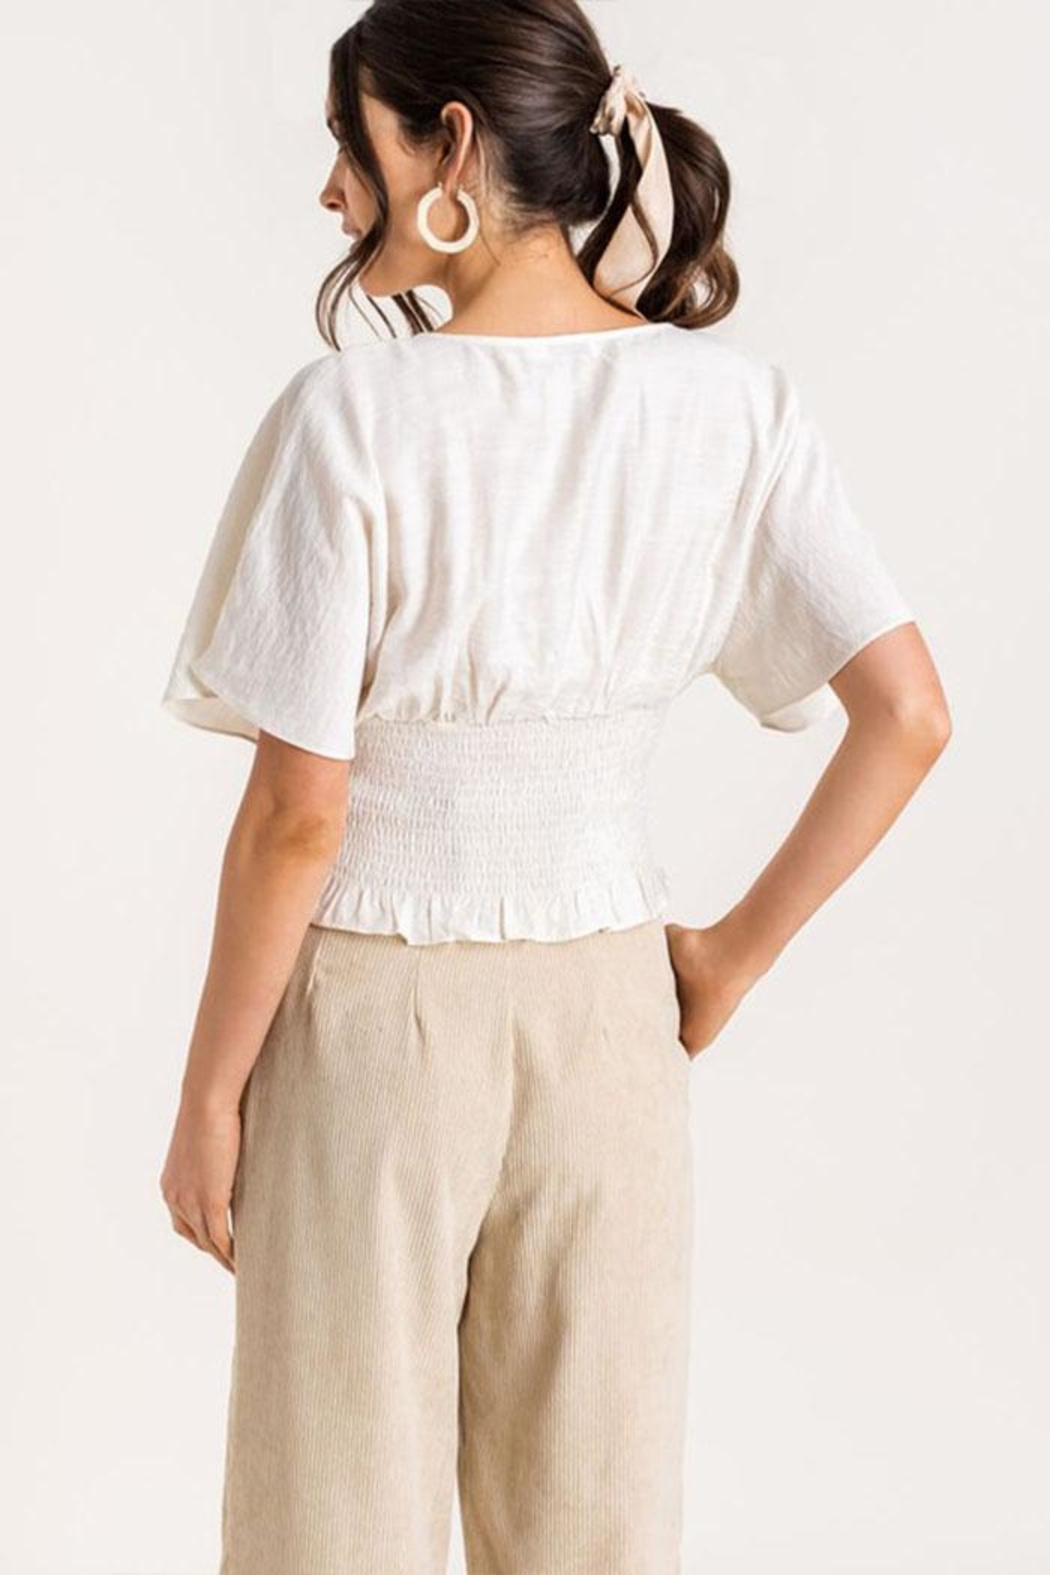 Lush Tie-Front Smocked Top - Side Cropped Image